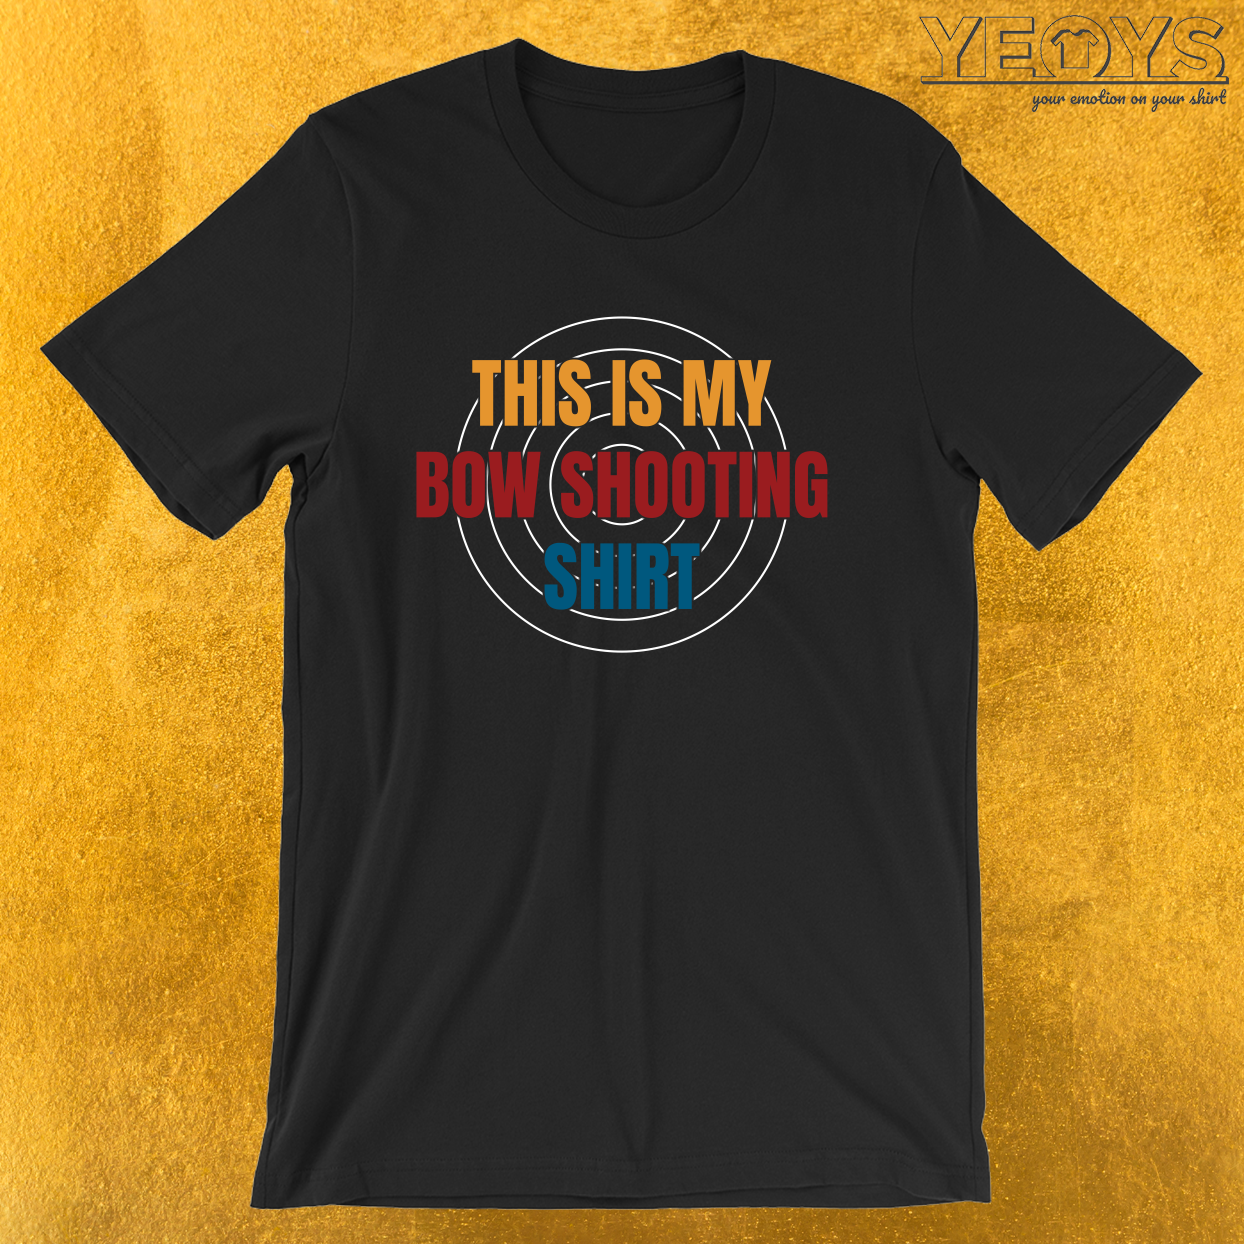 This Is My Bow Shooting Shirt – USA Archery Tee